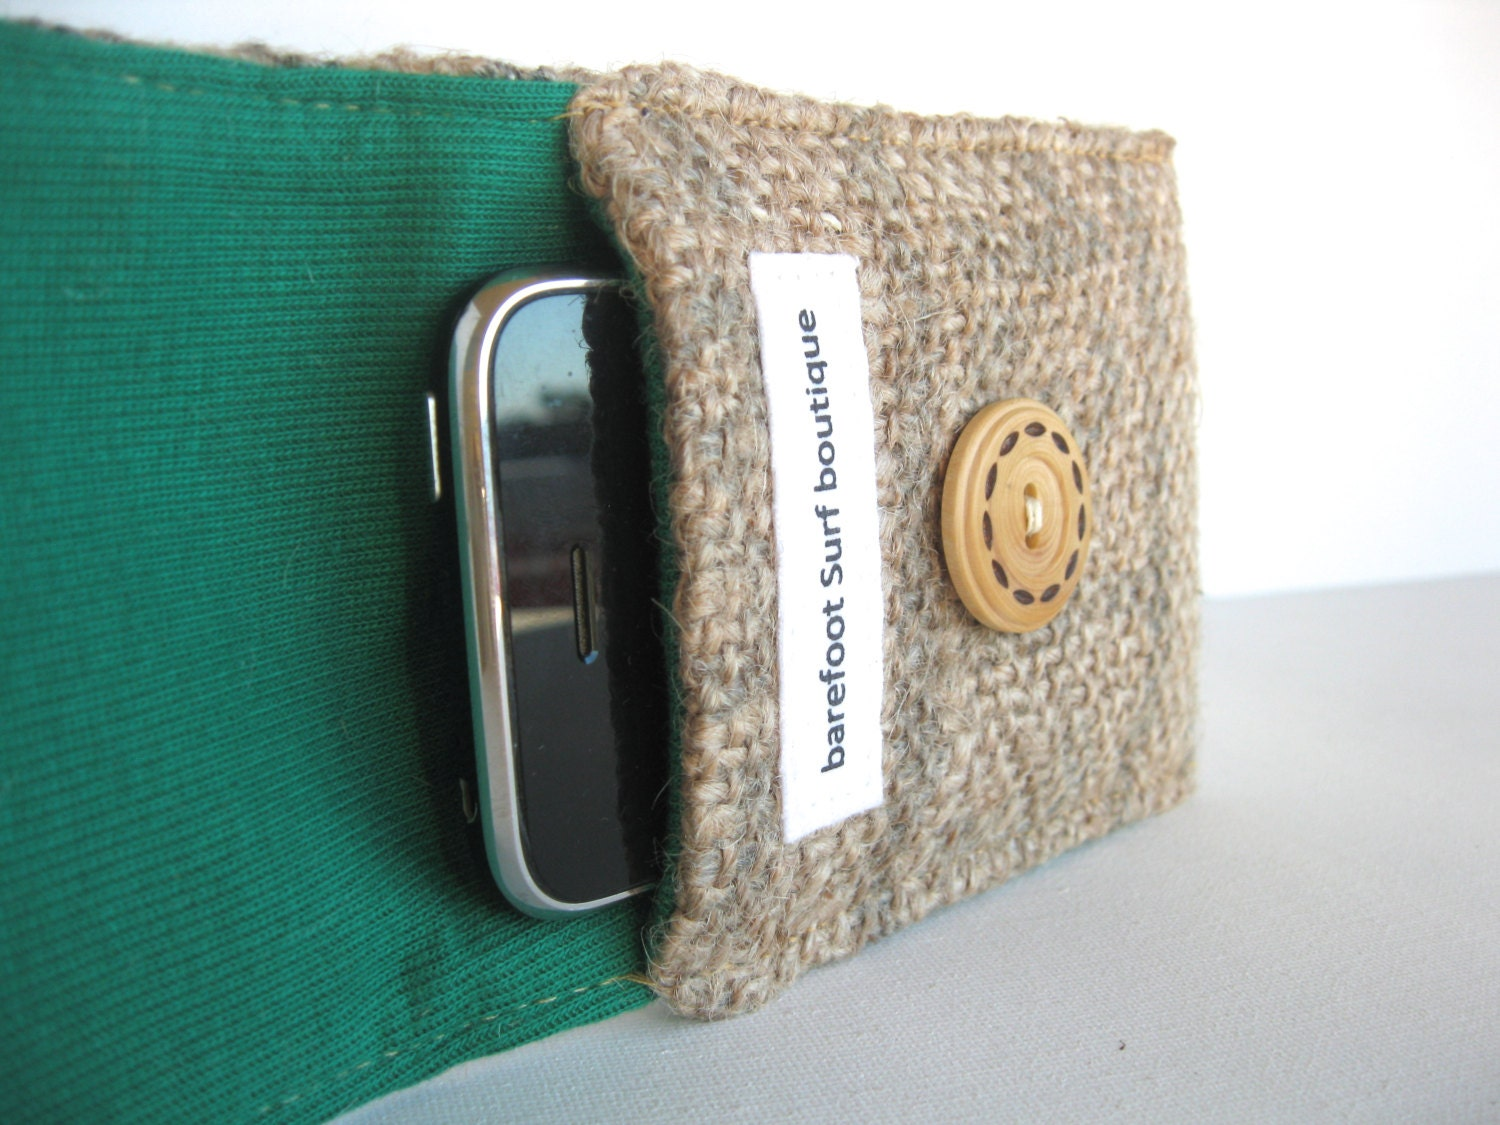 Emerald. Green. Leaf. Eco. Iphone. Cozy. Upcycled. Burlap. Tshirt. Spring Fashion. Earth Day. For Her. Teen. Tween. Gift Idea.